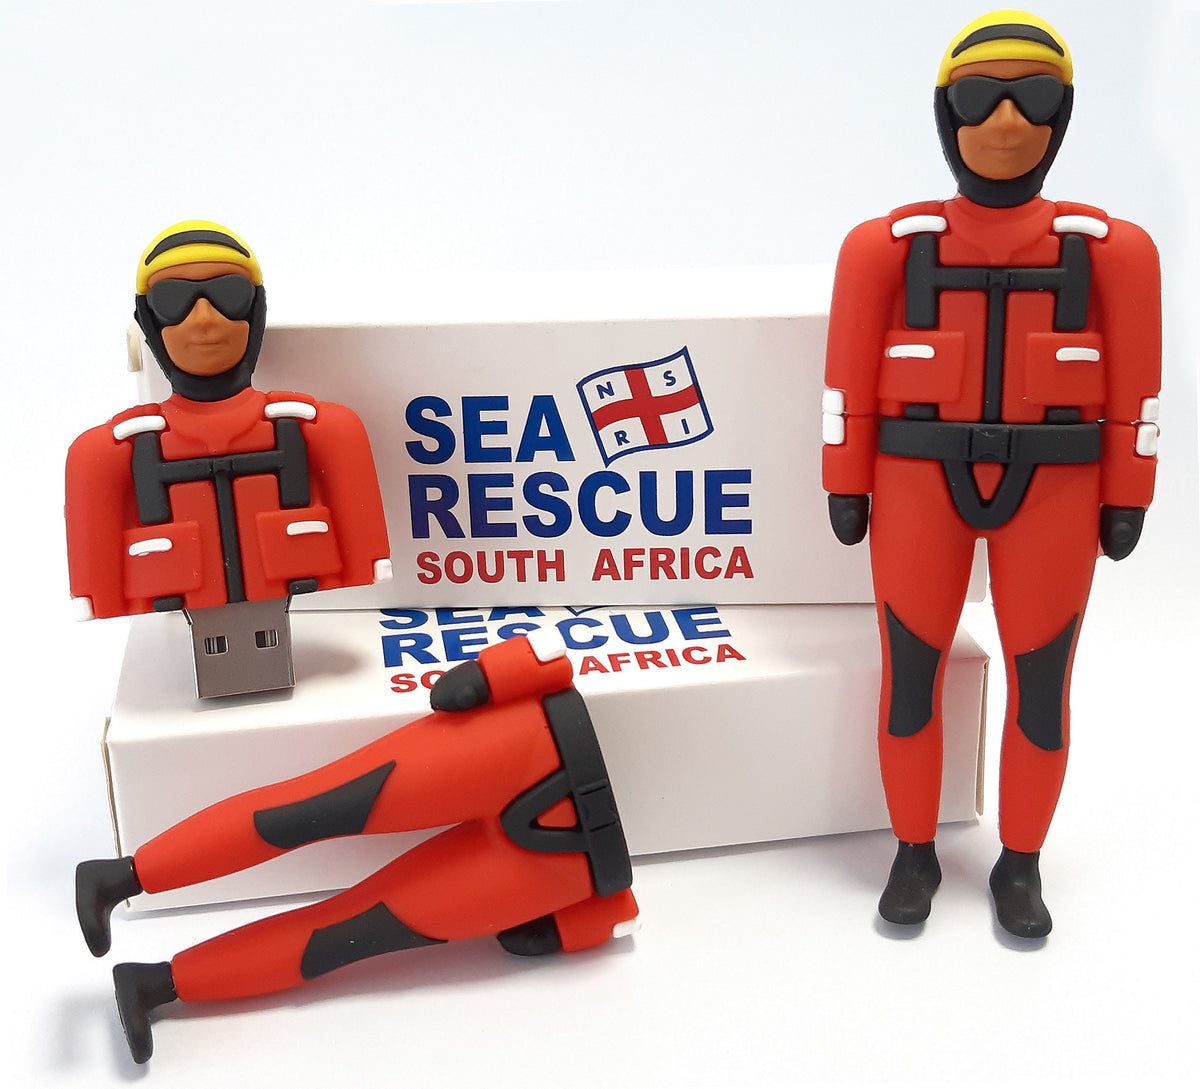 4GB NSRI Rescuer USB Flash Drive